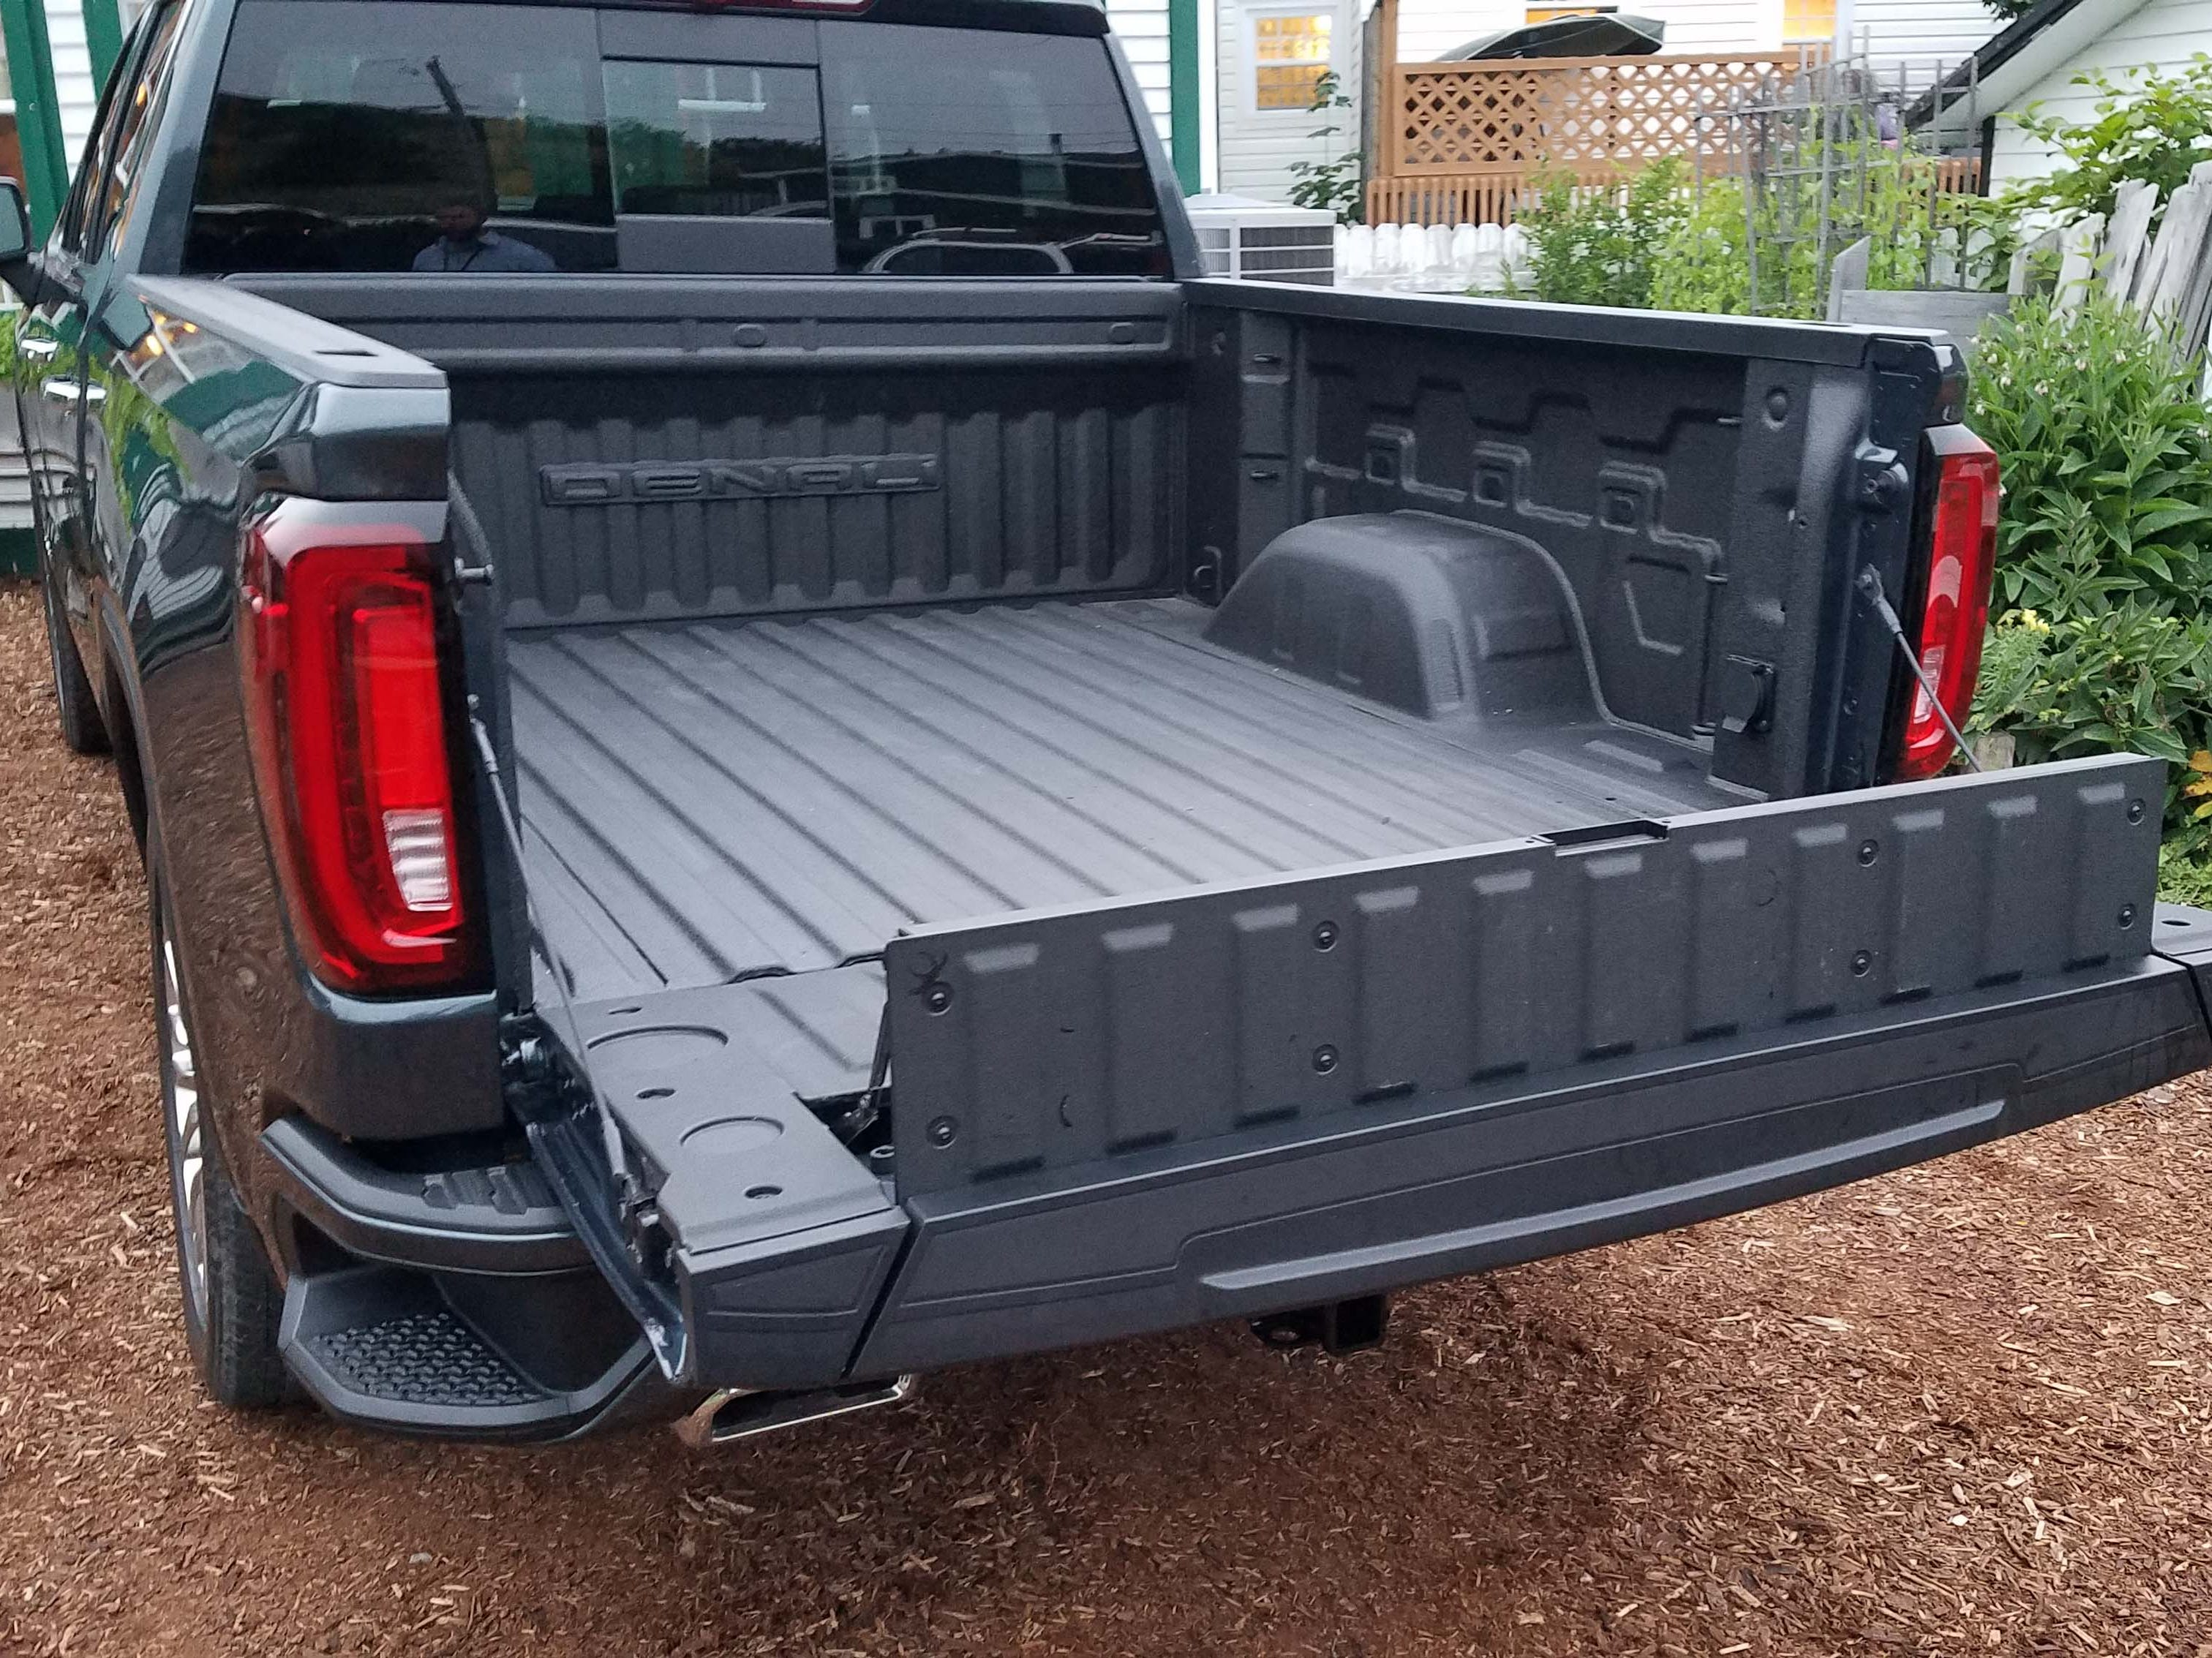 GMC Sierra MultiPro tailgate, Step 4: With the full gate open, the inner-gate shelf can again be propped open to create a lower load stop. For large loads with the truck, I preferred the taller load-stop so I could put the heavy stuff in the bed of the truck and then long, load-stopped boards on top of them.